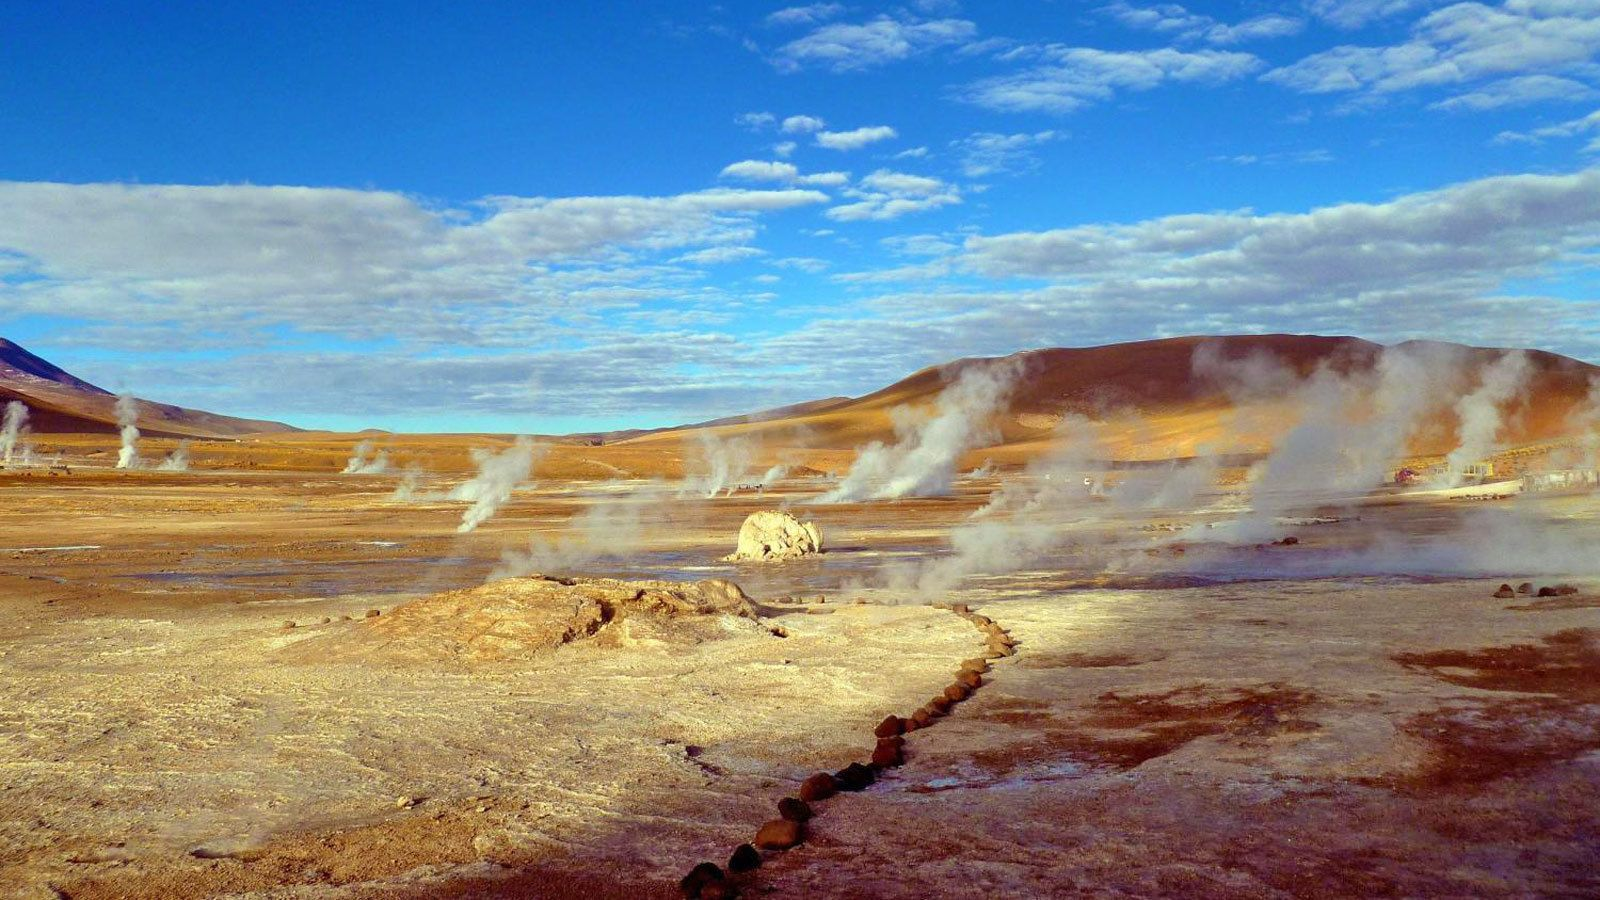 Field of geysers in Chile